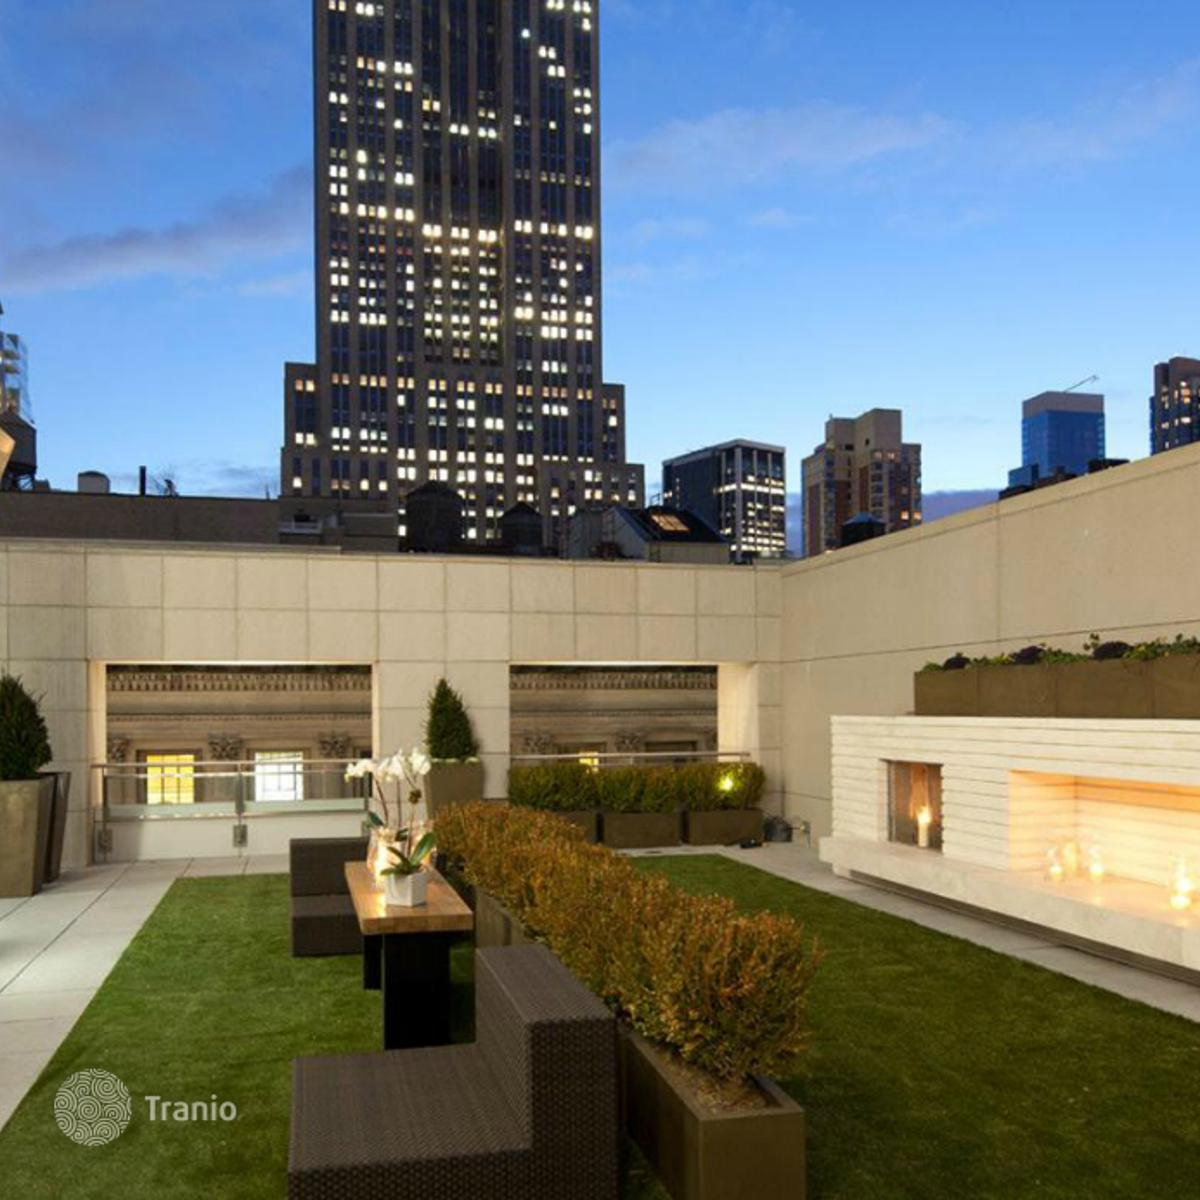 Condos New York City: Listing #1466190 In New York City, State Of New York, USA